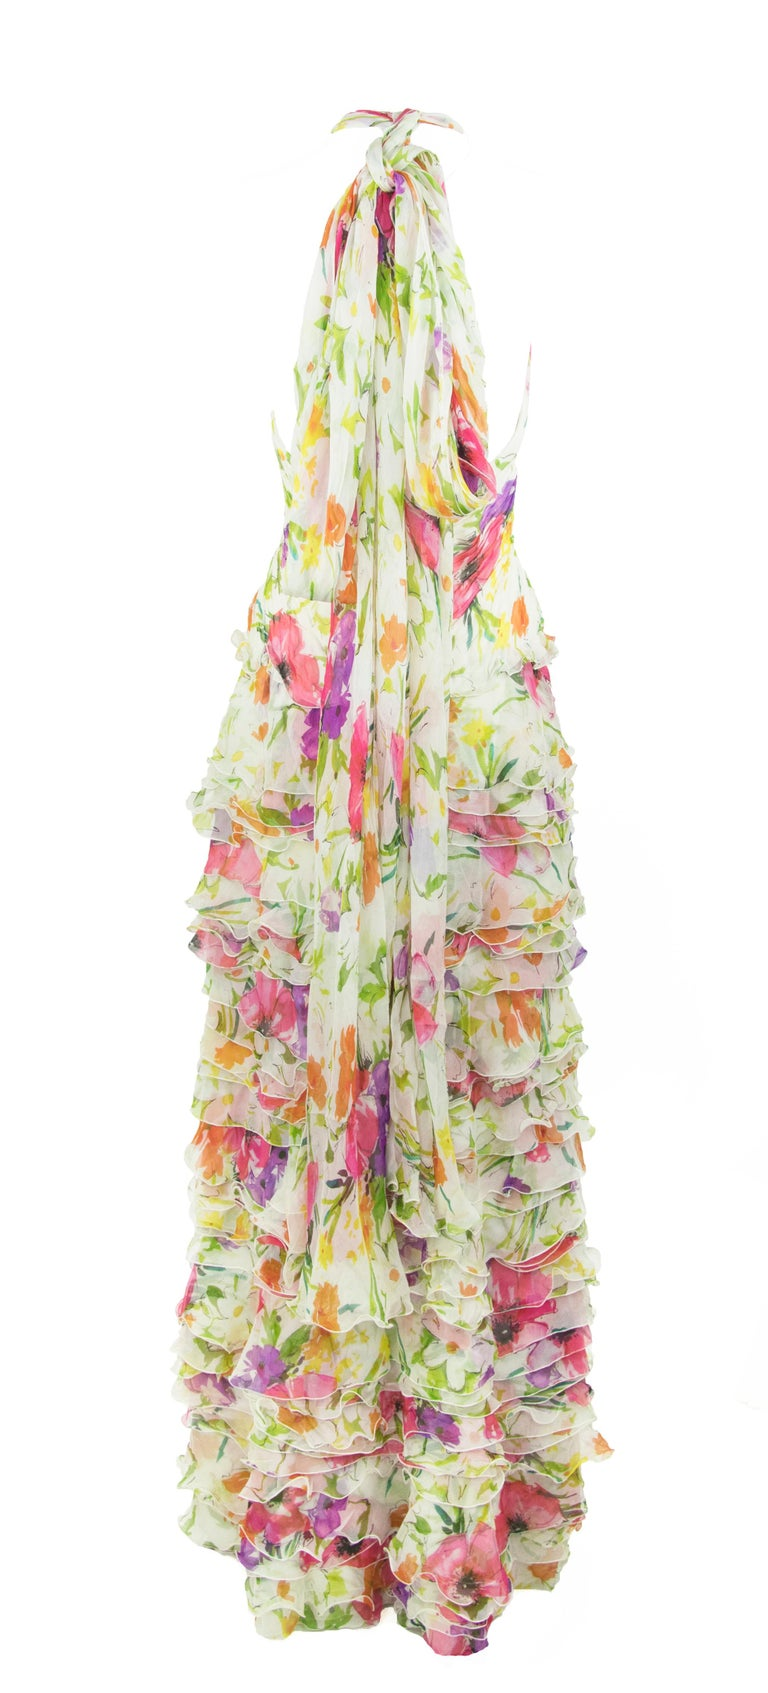 Incredible layers of white floral printed chiffon ruffles and a gathered bodice make this gown elegant and feminine.  Perfect for a summer soiree.  A halter neck with along tie gives this gown a dramatic effect.  Size: 2  Condition: In pristine